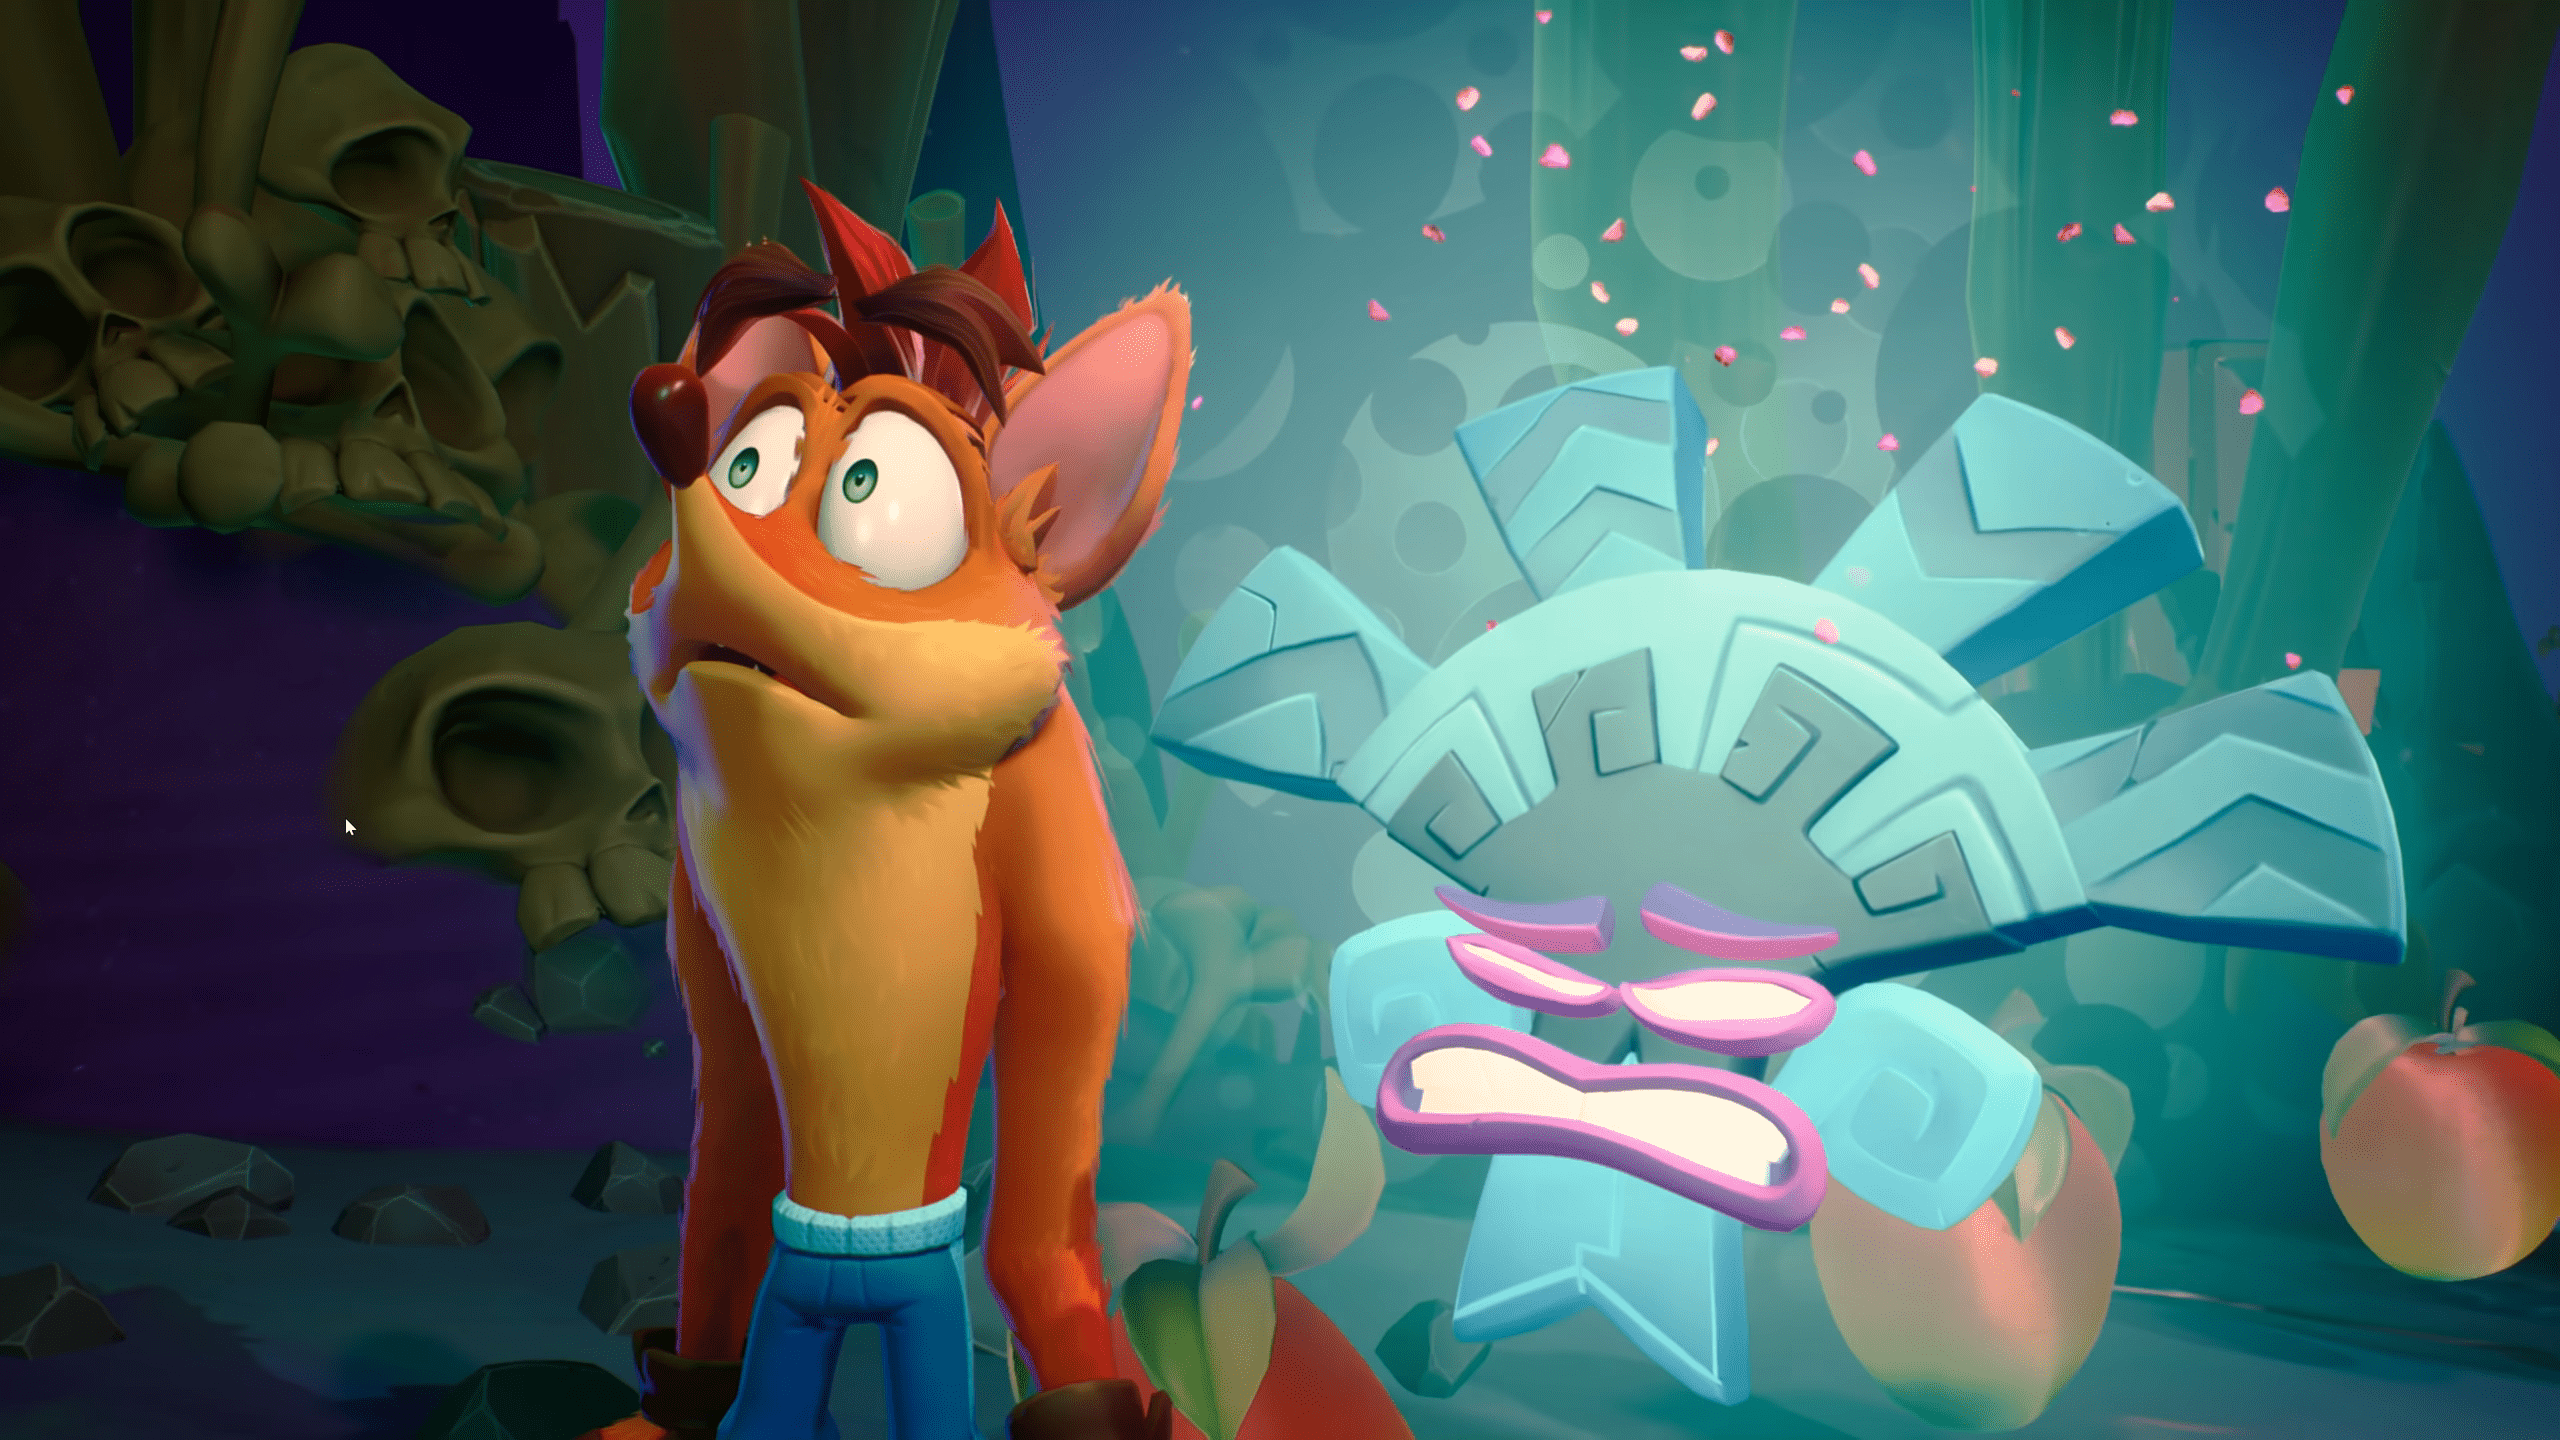 Crash Bandicoot 4: It's About Time avrà più di 100 livelli giocabili!